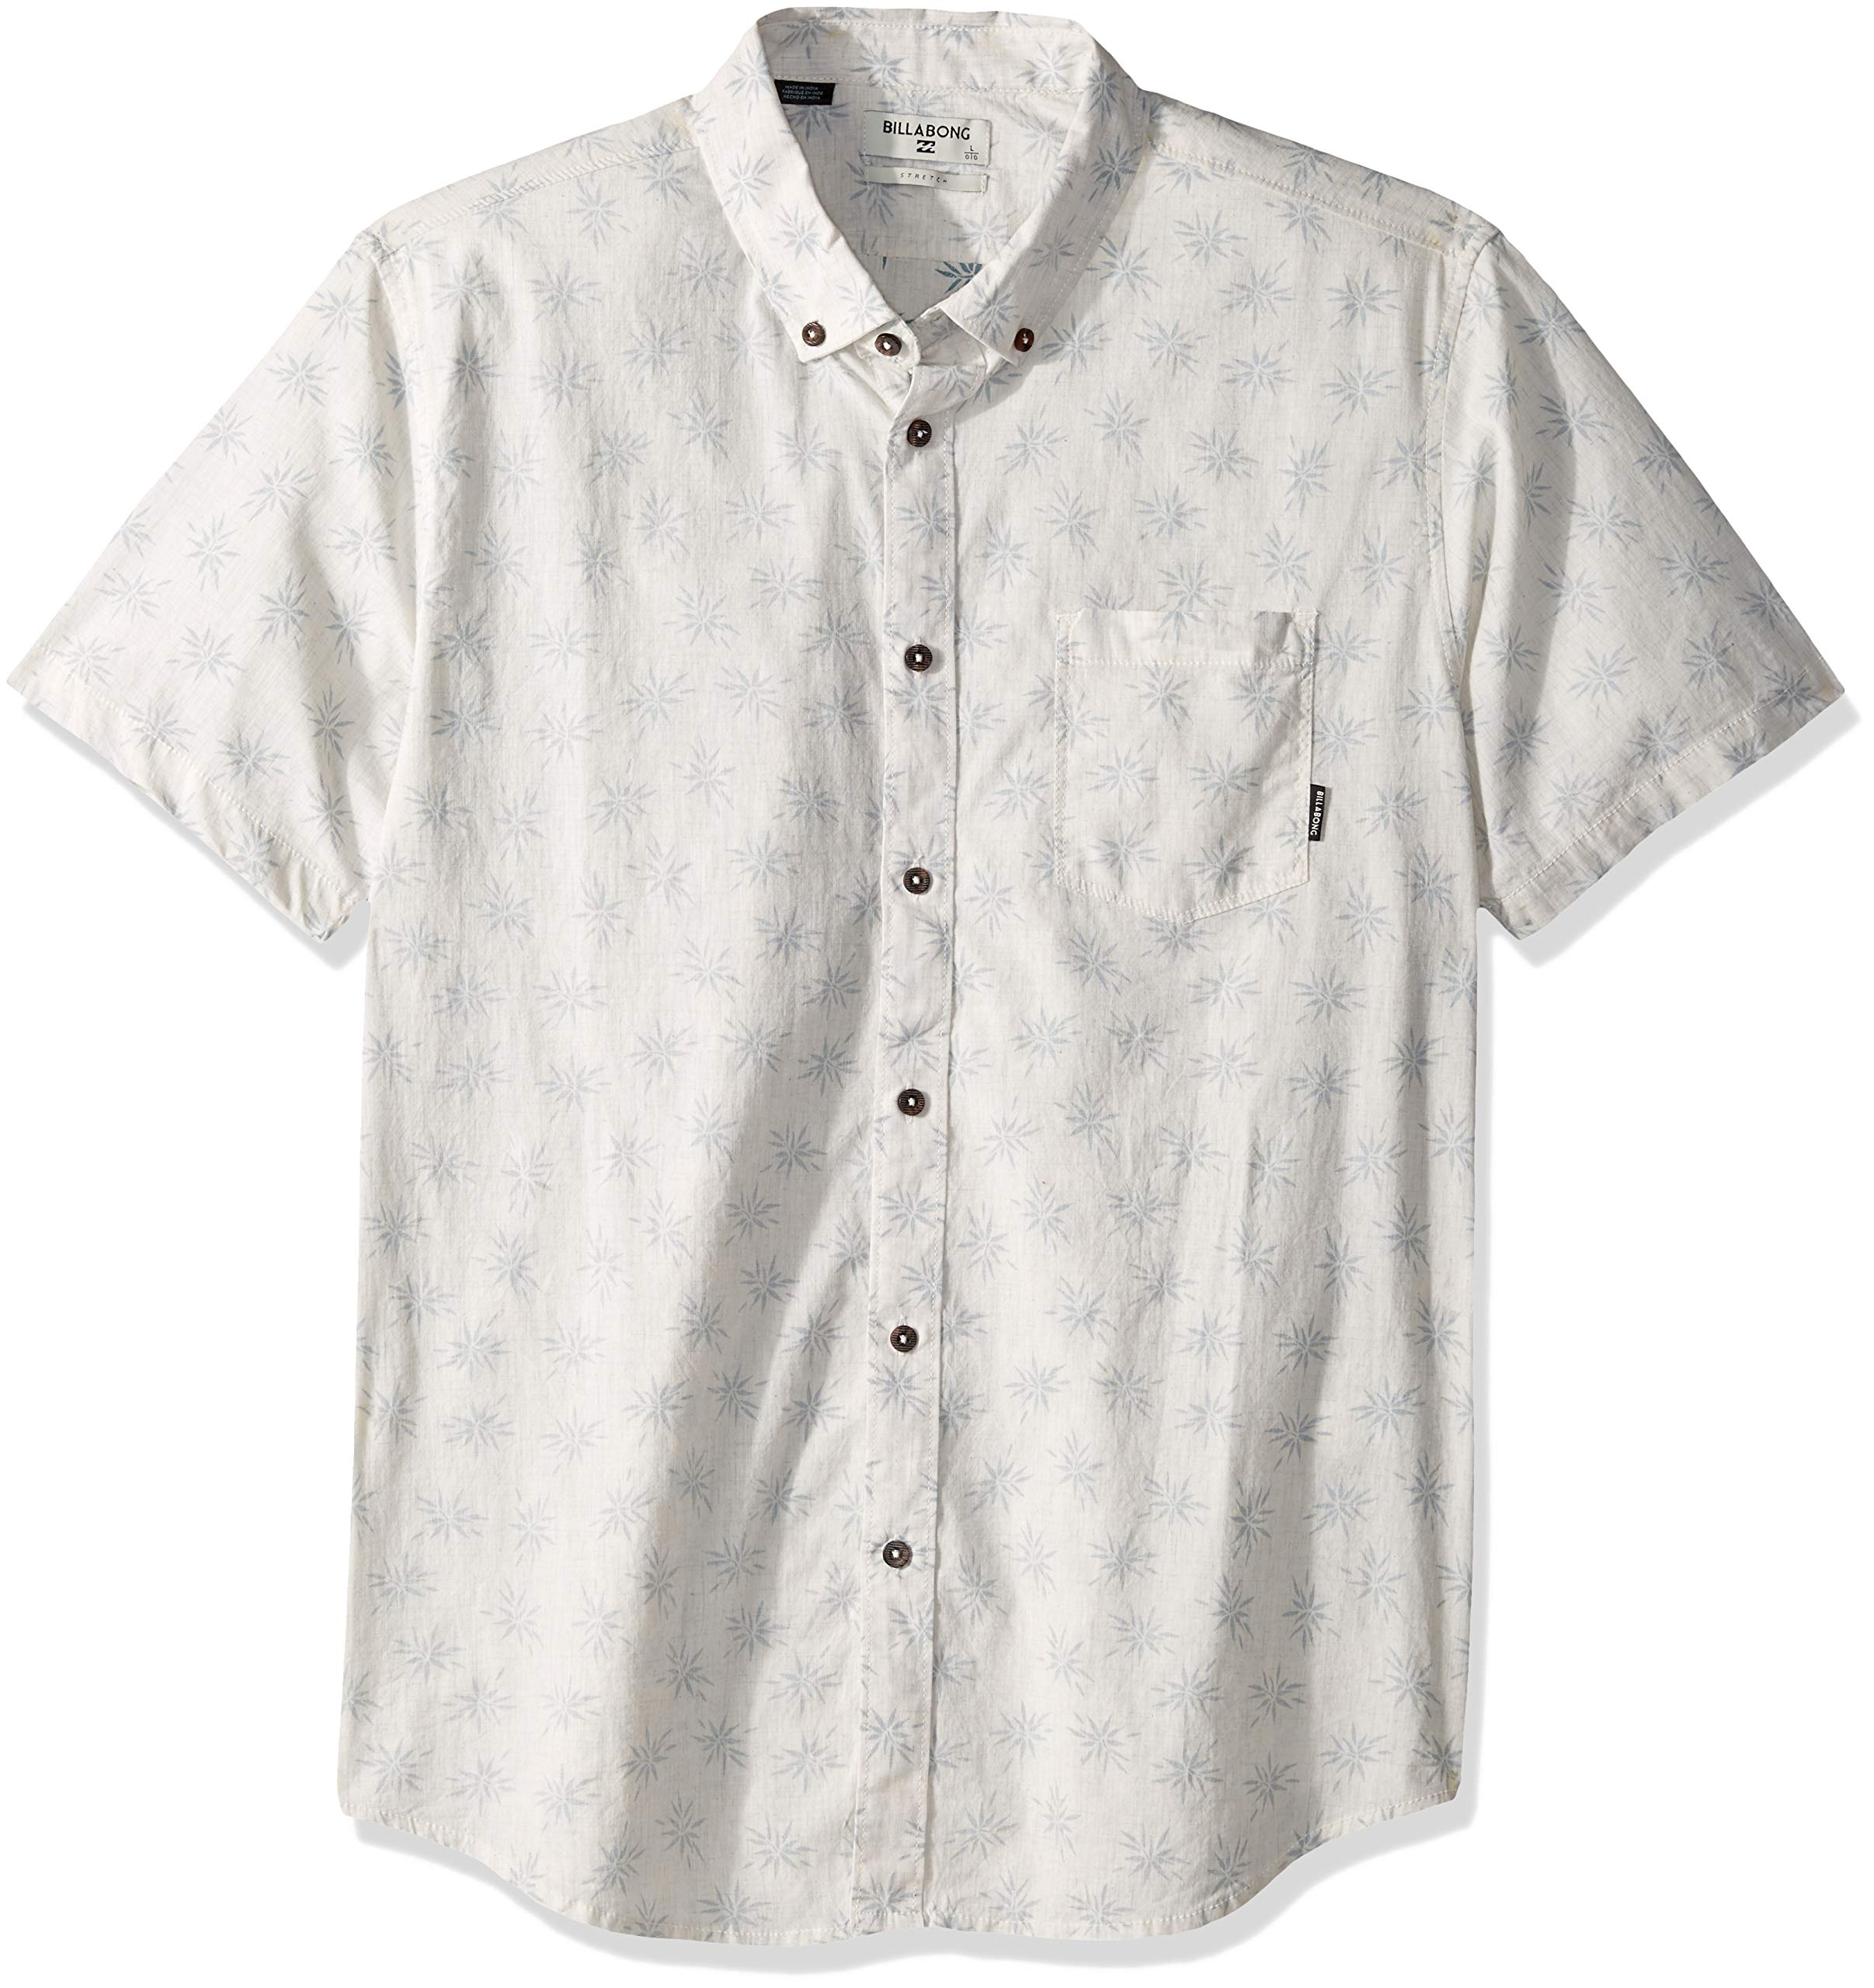 Billabong Men's Sundays Mini Short Sleeve Woven Shirt